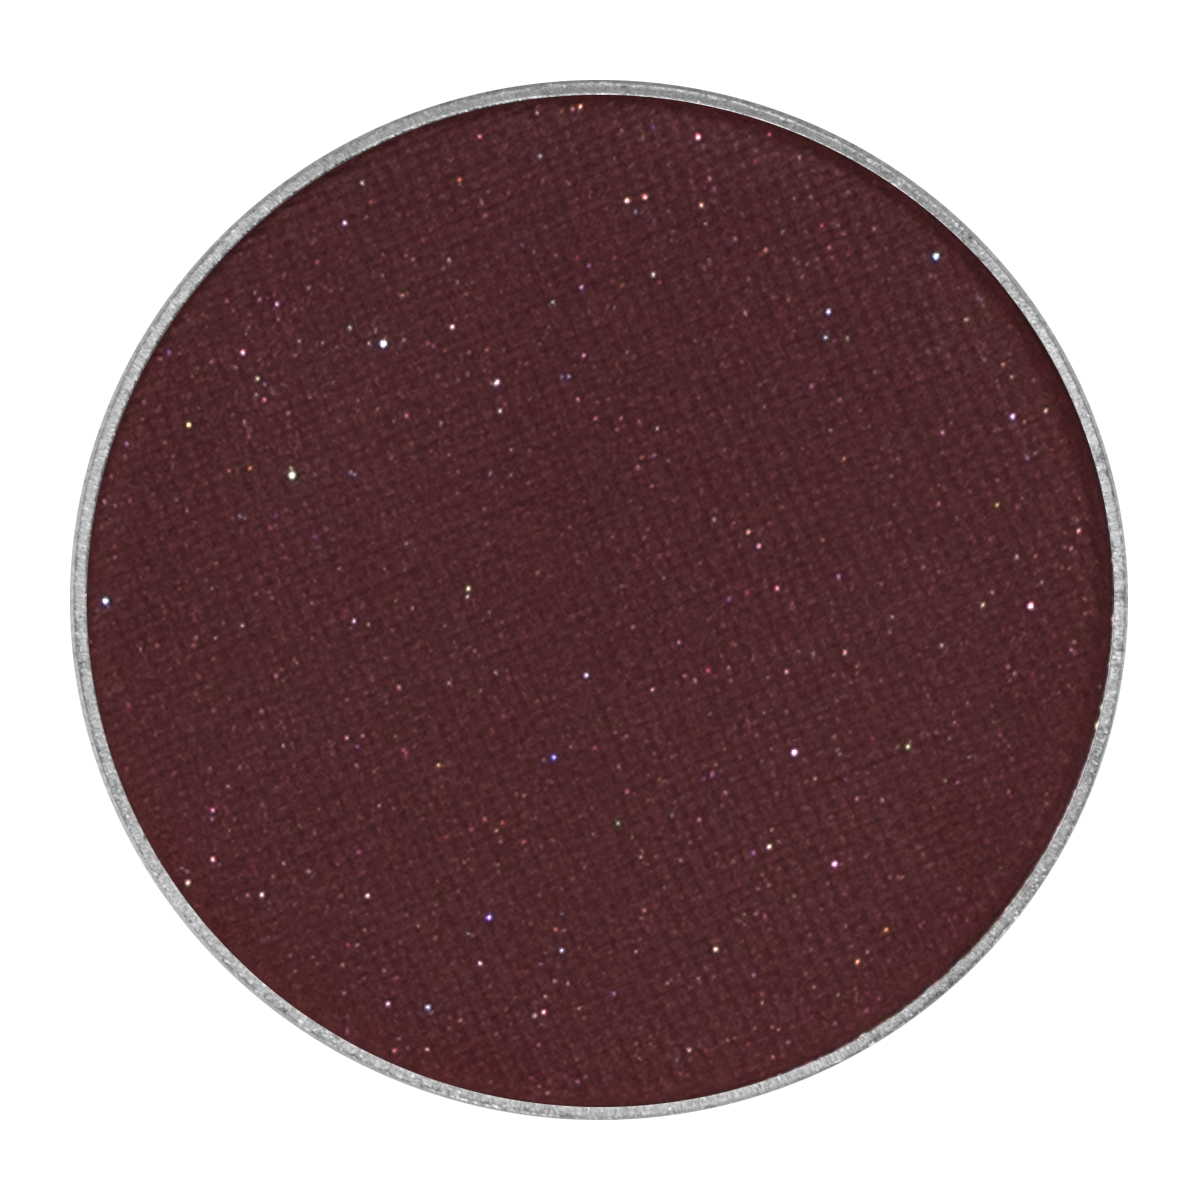 PLEASANTLY PLUM - Eye Shadow (matte) - Jonny Cosmetics